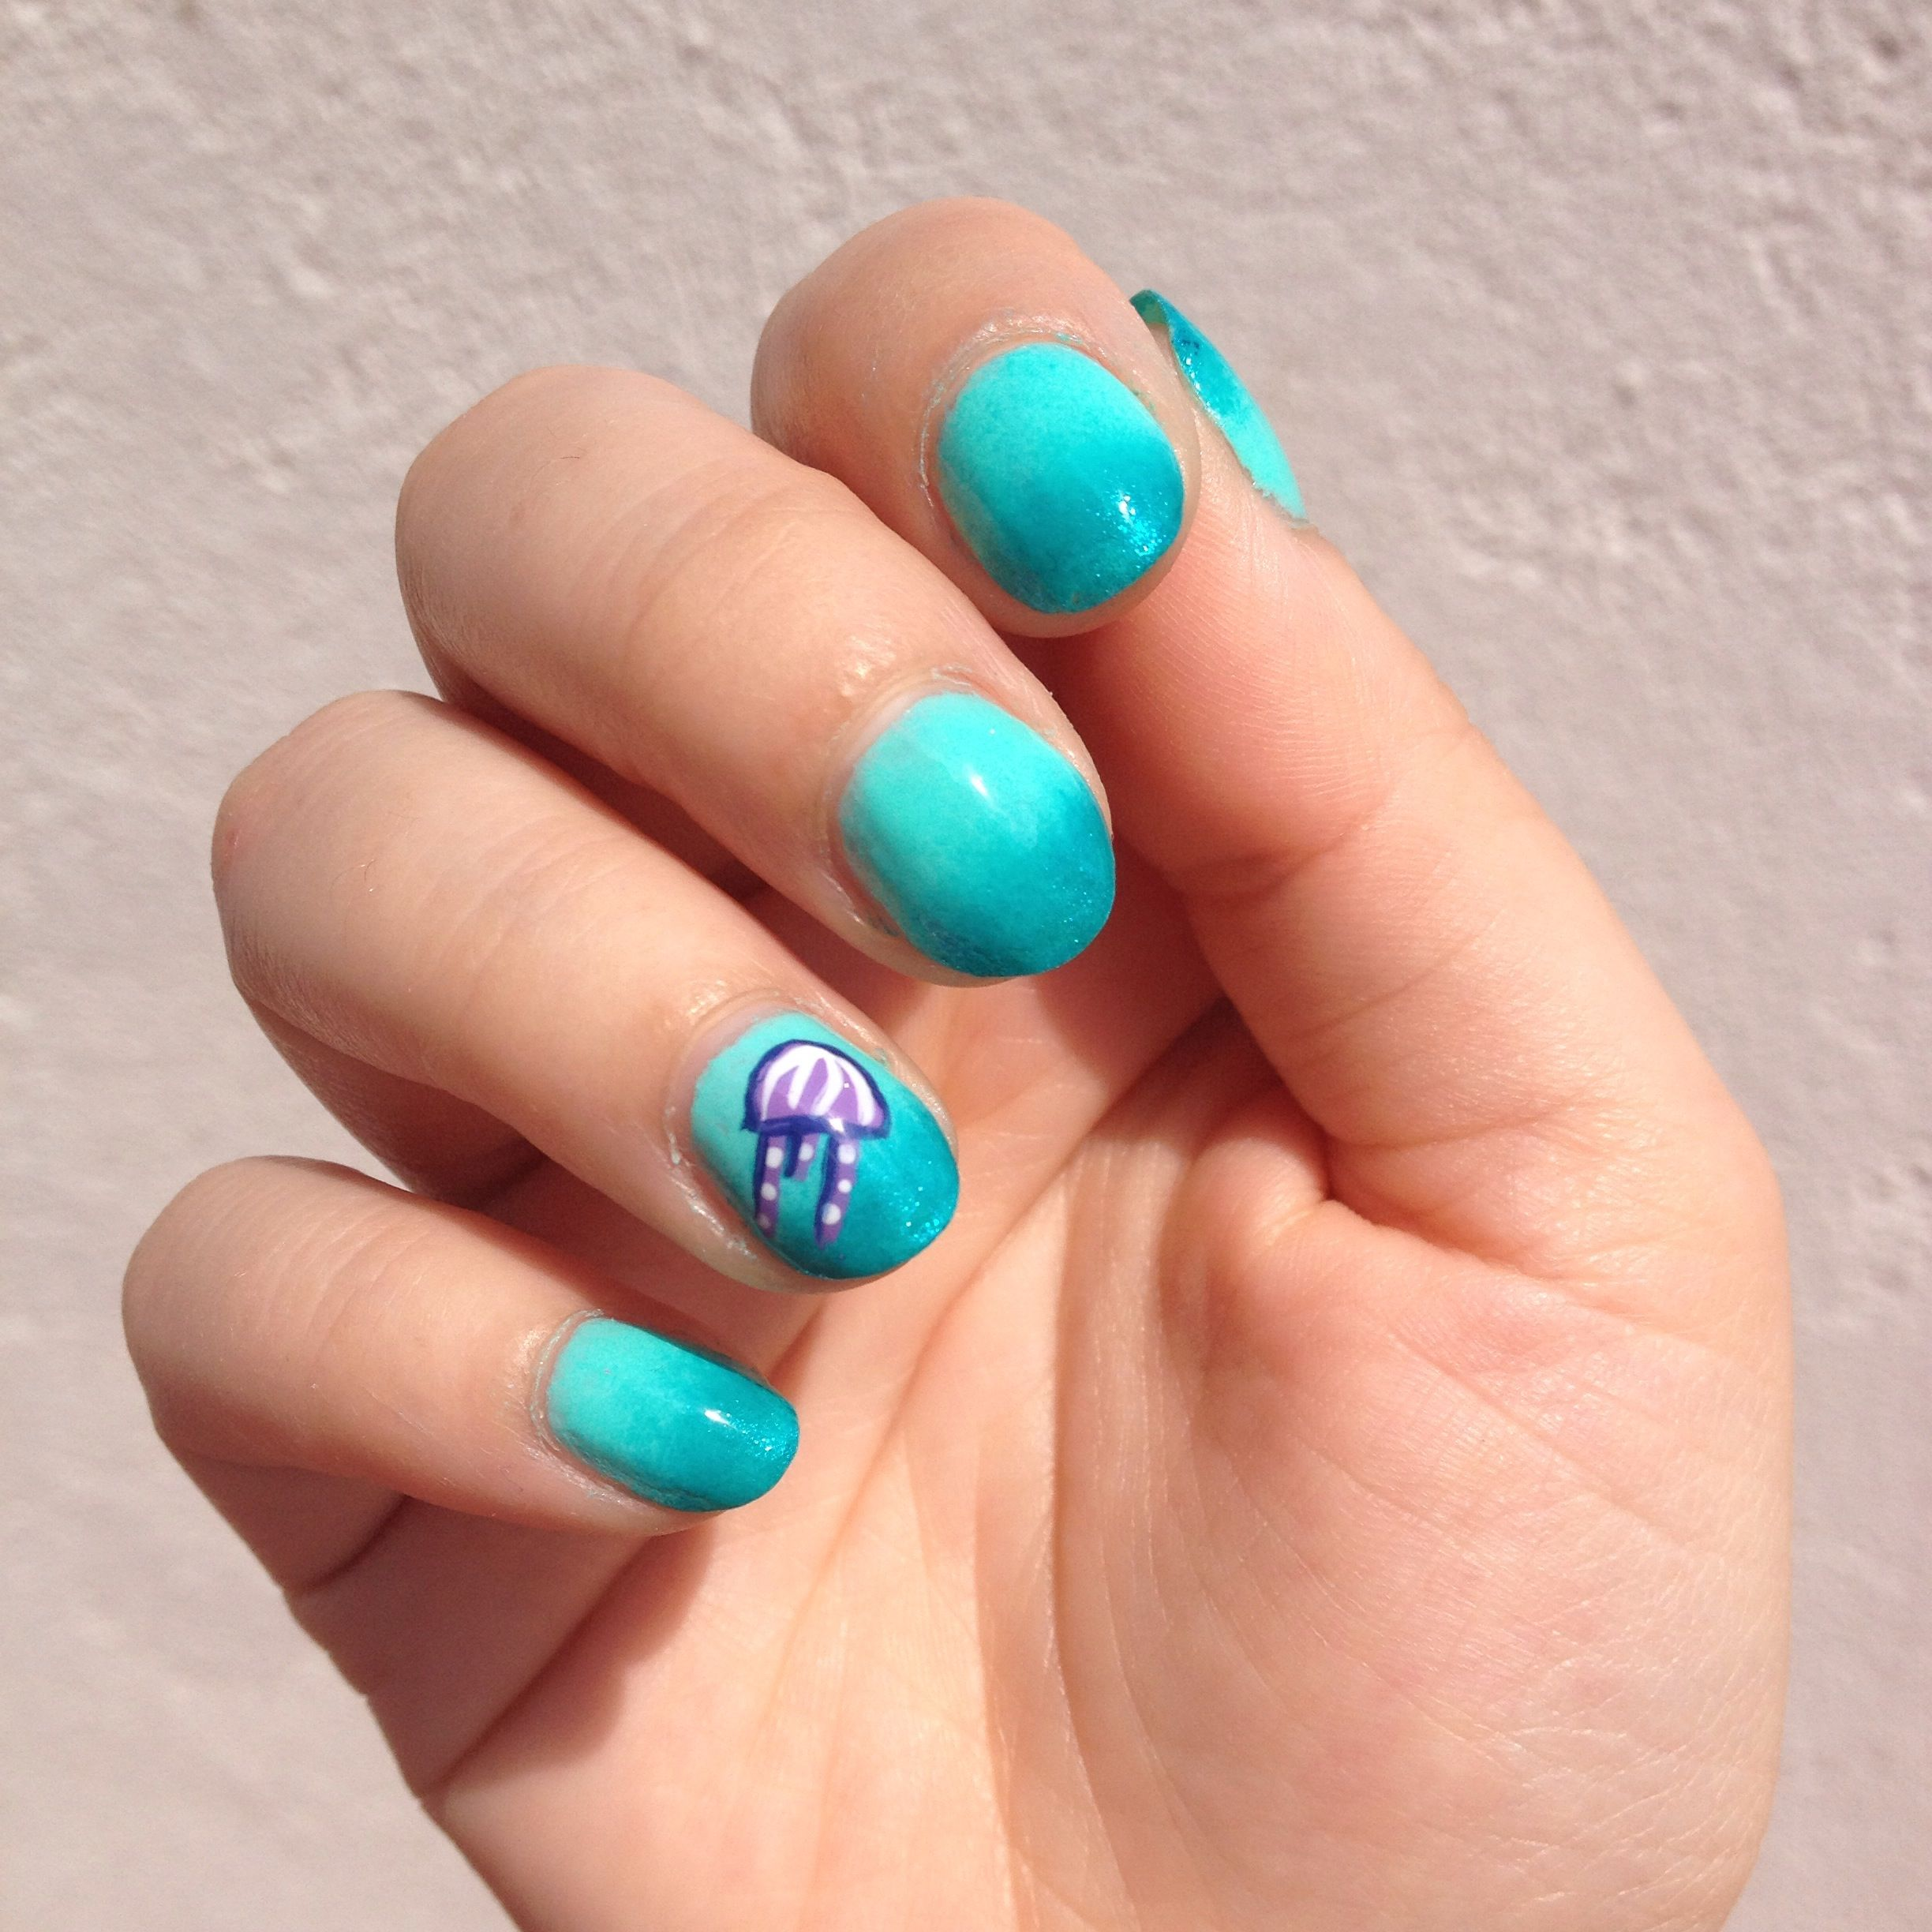 Nail art: Degradado con medusa | nailappeal